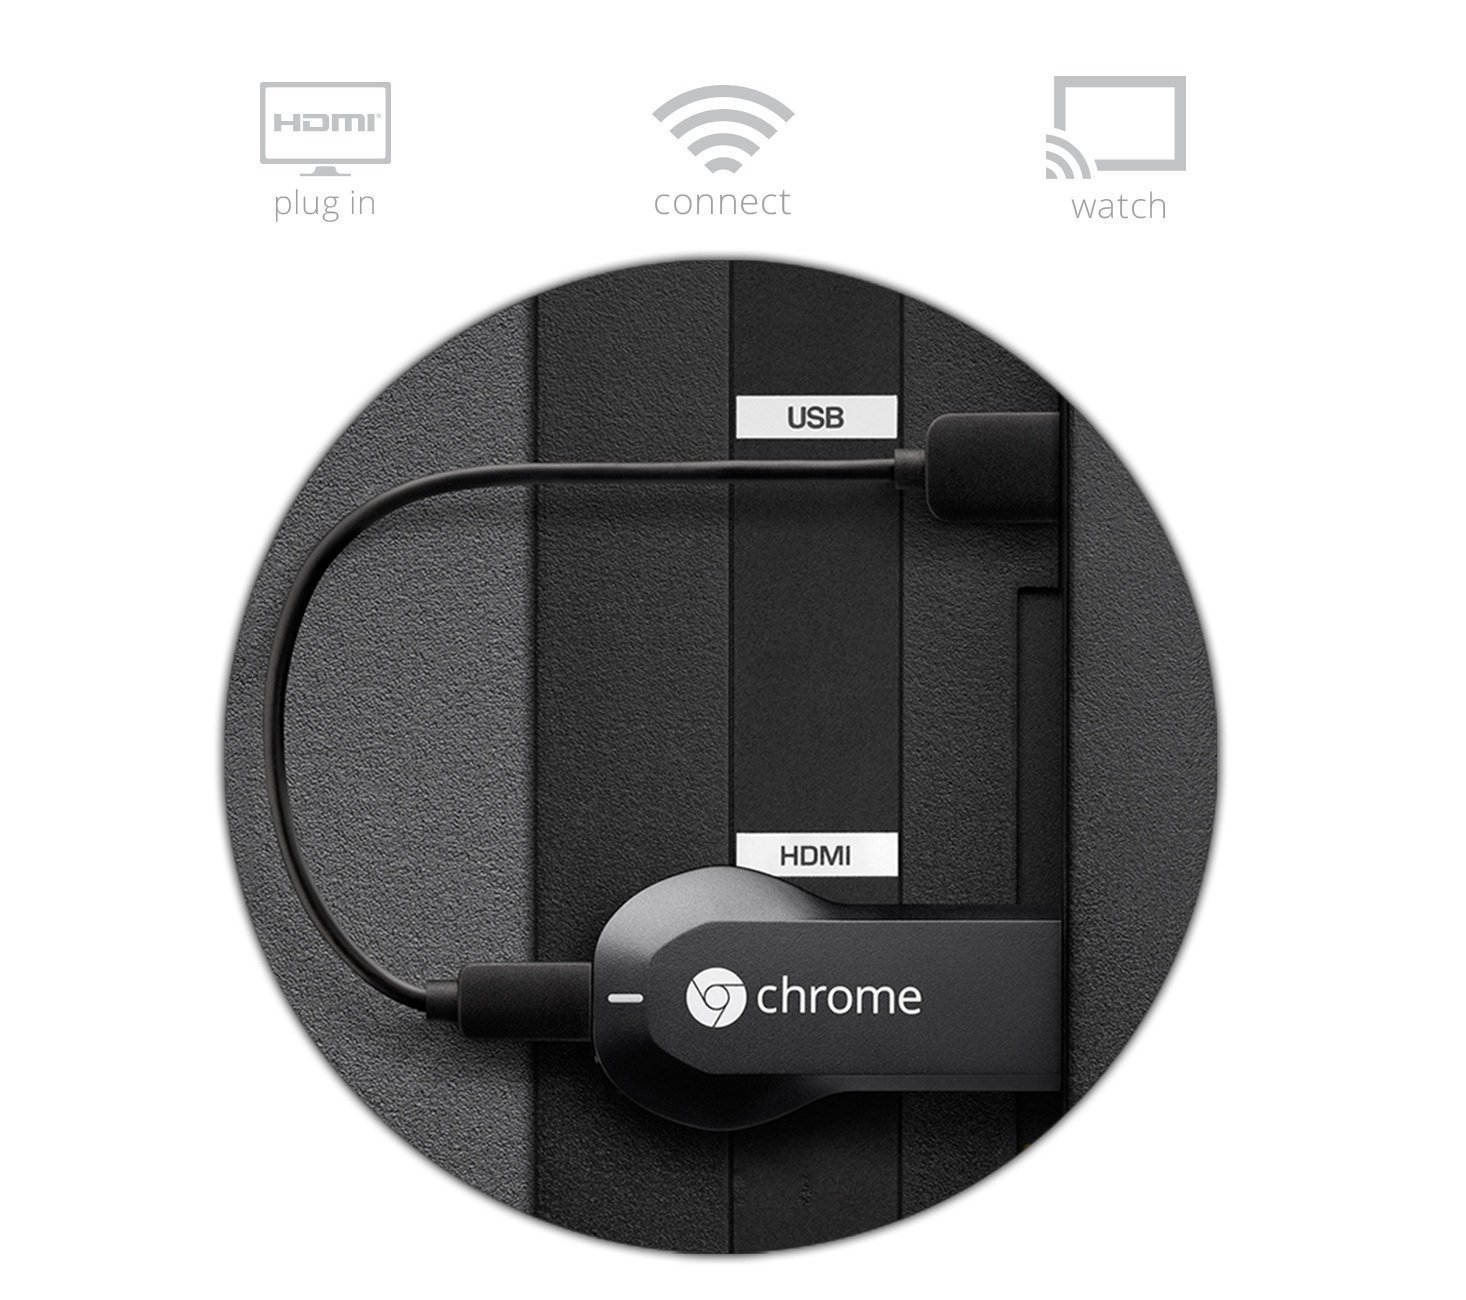 google-chromecast-review